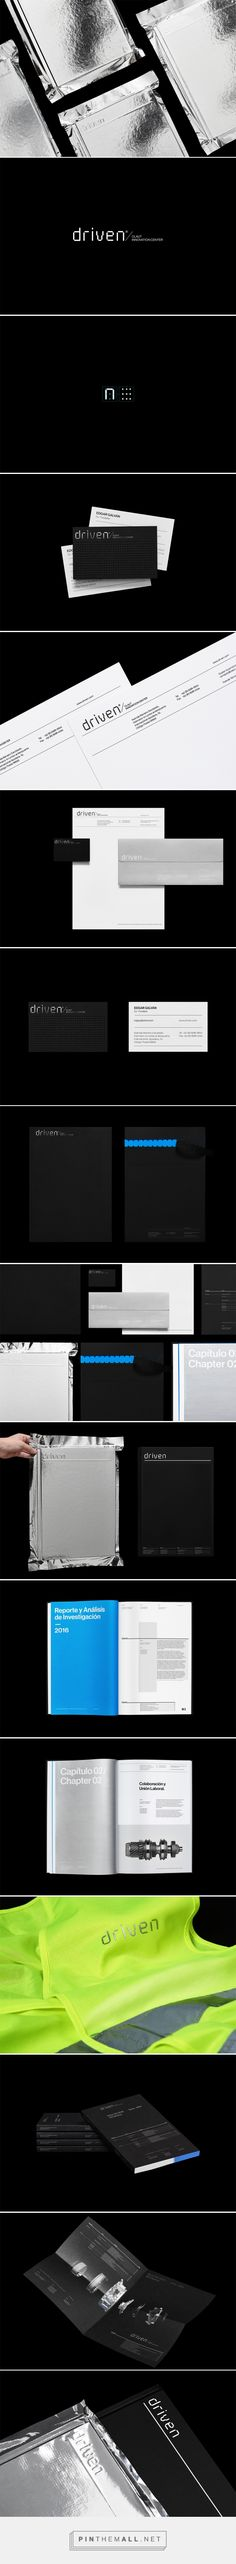 Driven by Anagrama on Behance... - a grouped images picture - Pin Them All